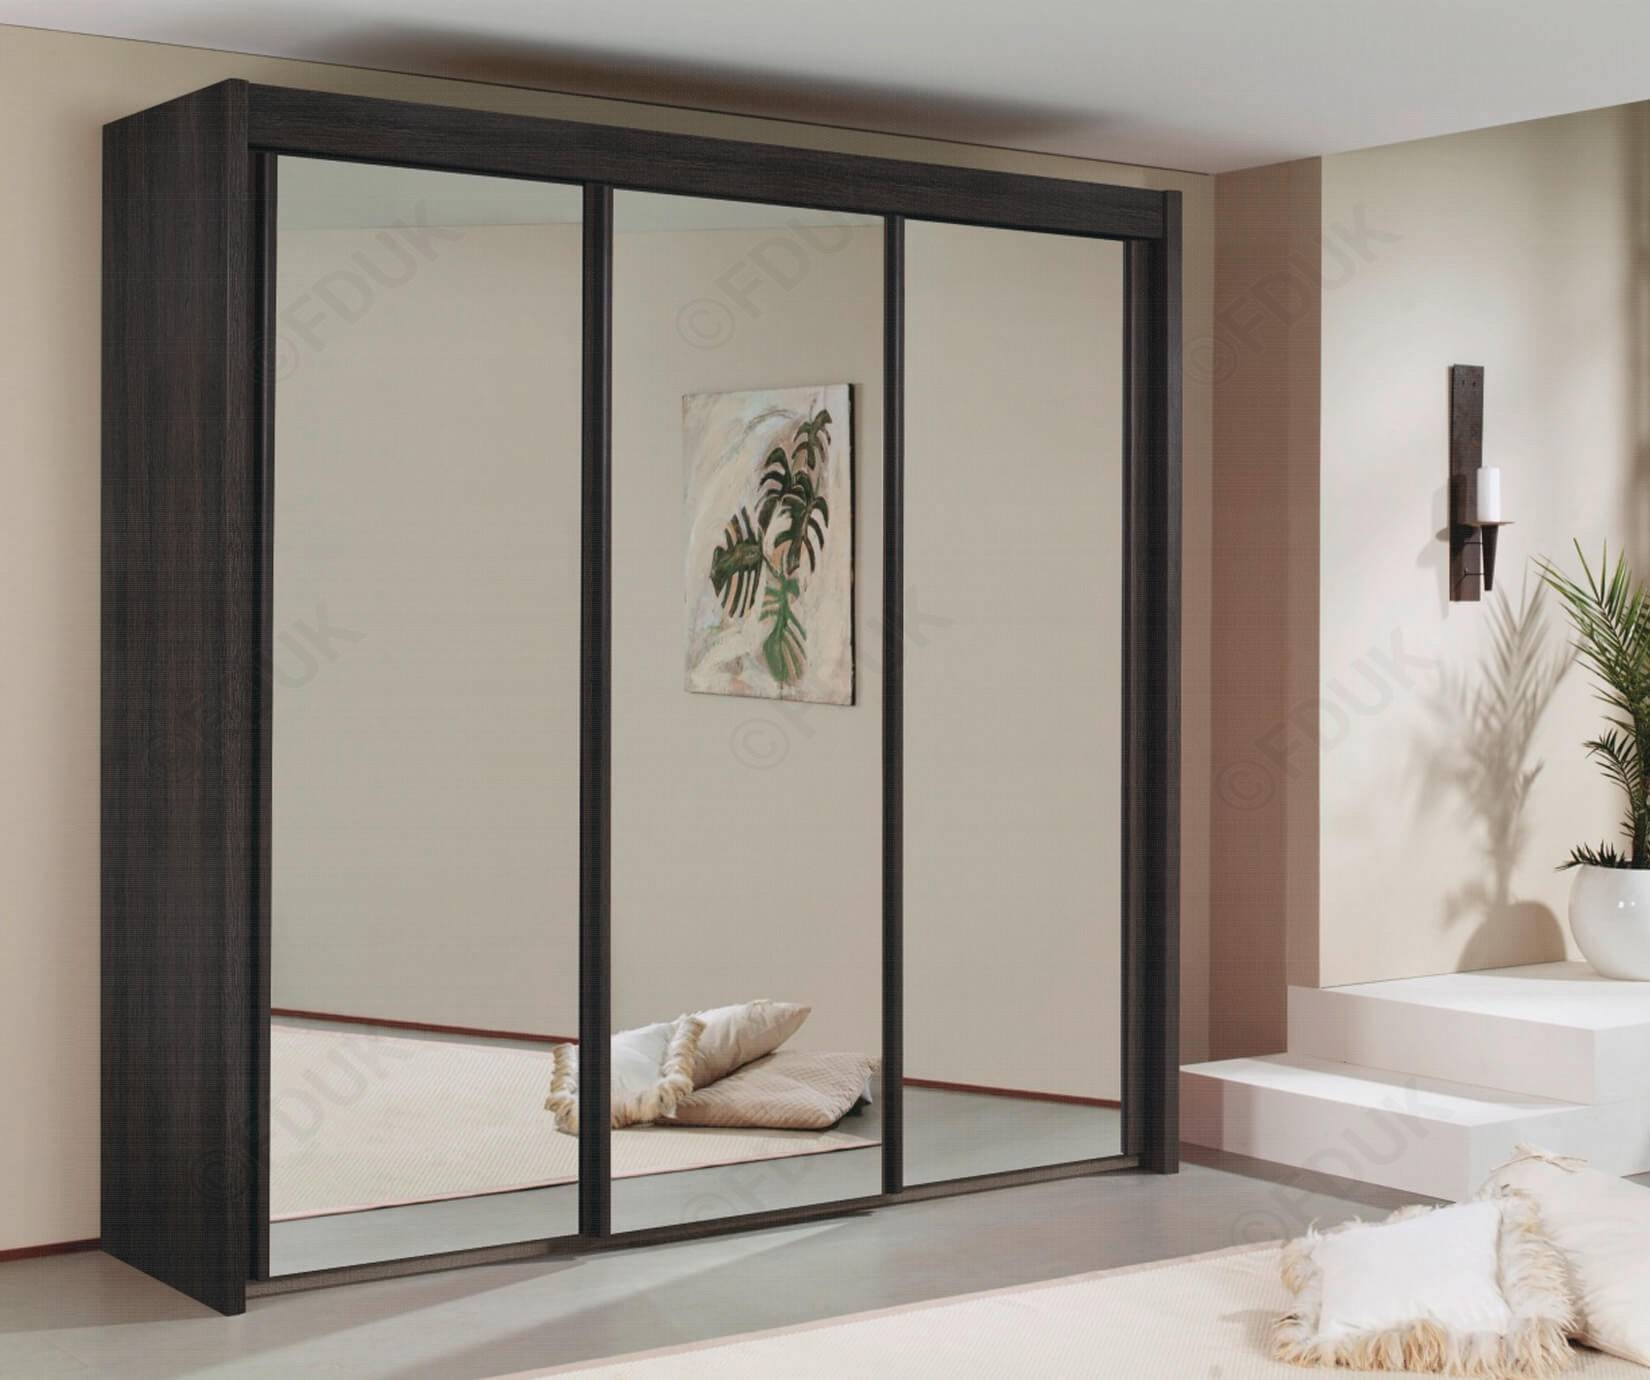 Rauch Furniture Imperial | Imperial Wardrobe With Full Mirror with Full Mirrored Wardrobes (Image 11 of 15)